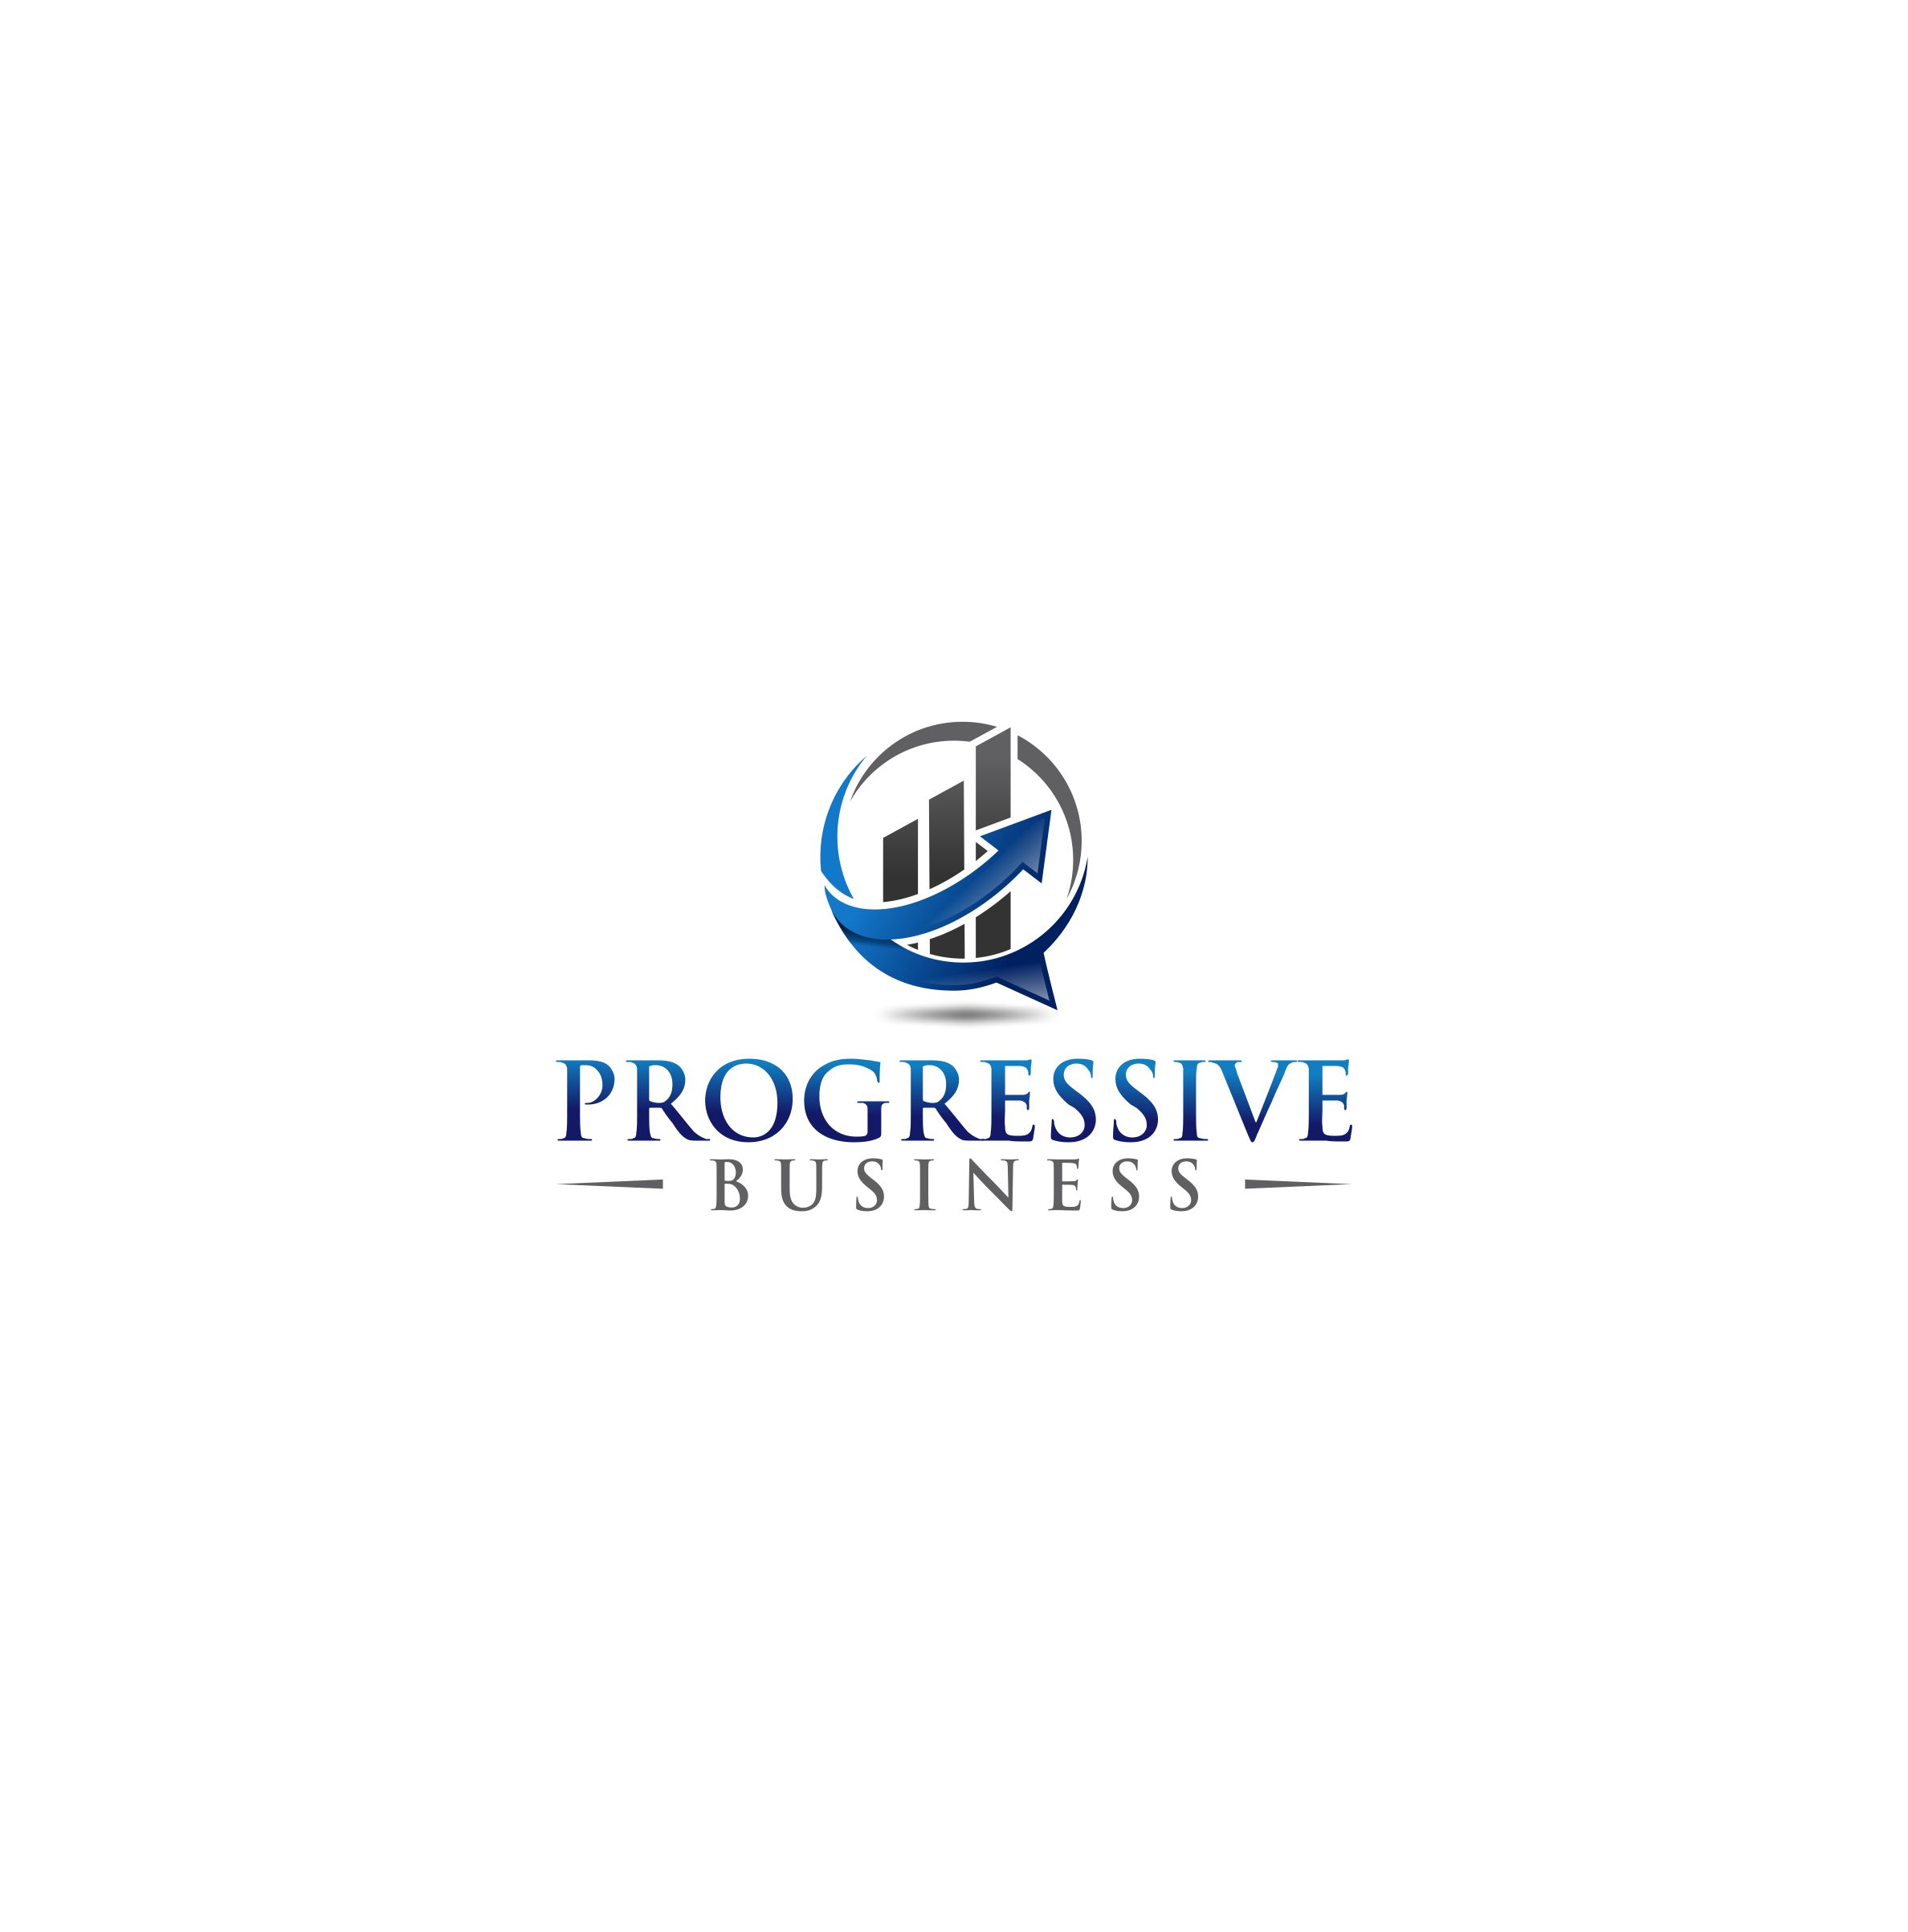 Logo Design by Raymond Garcia - Entry No. 16 in the Logo Design Contest Captivating Logo Design for Progressive Business.